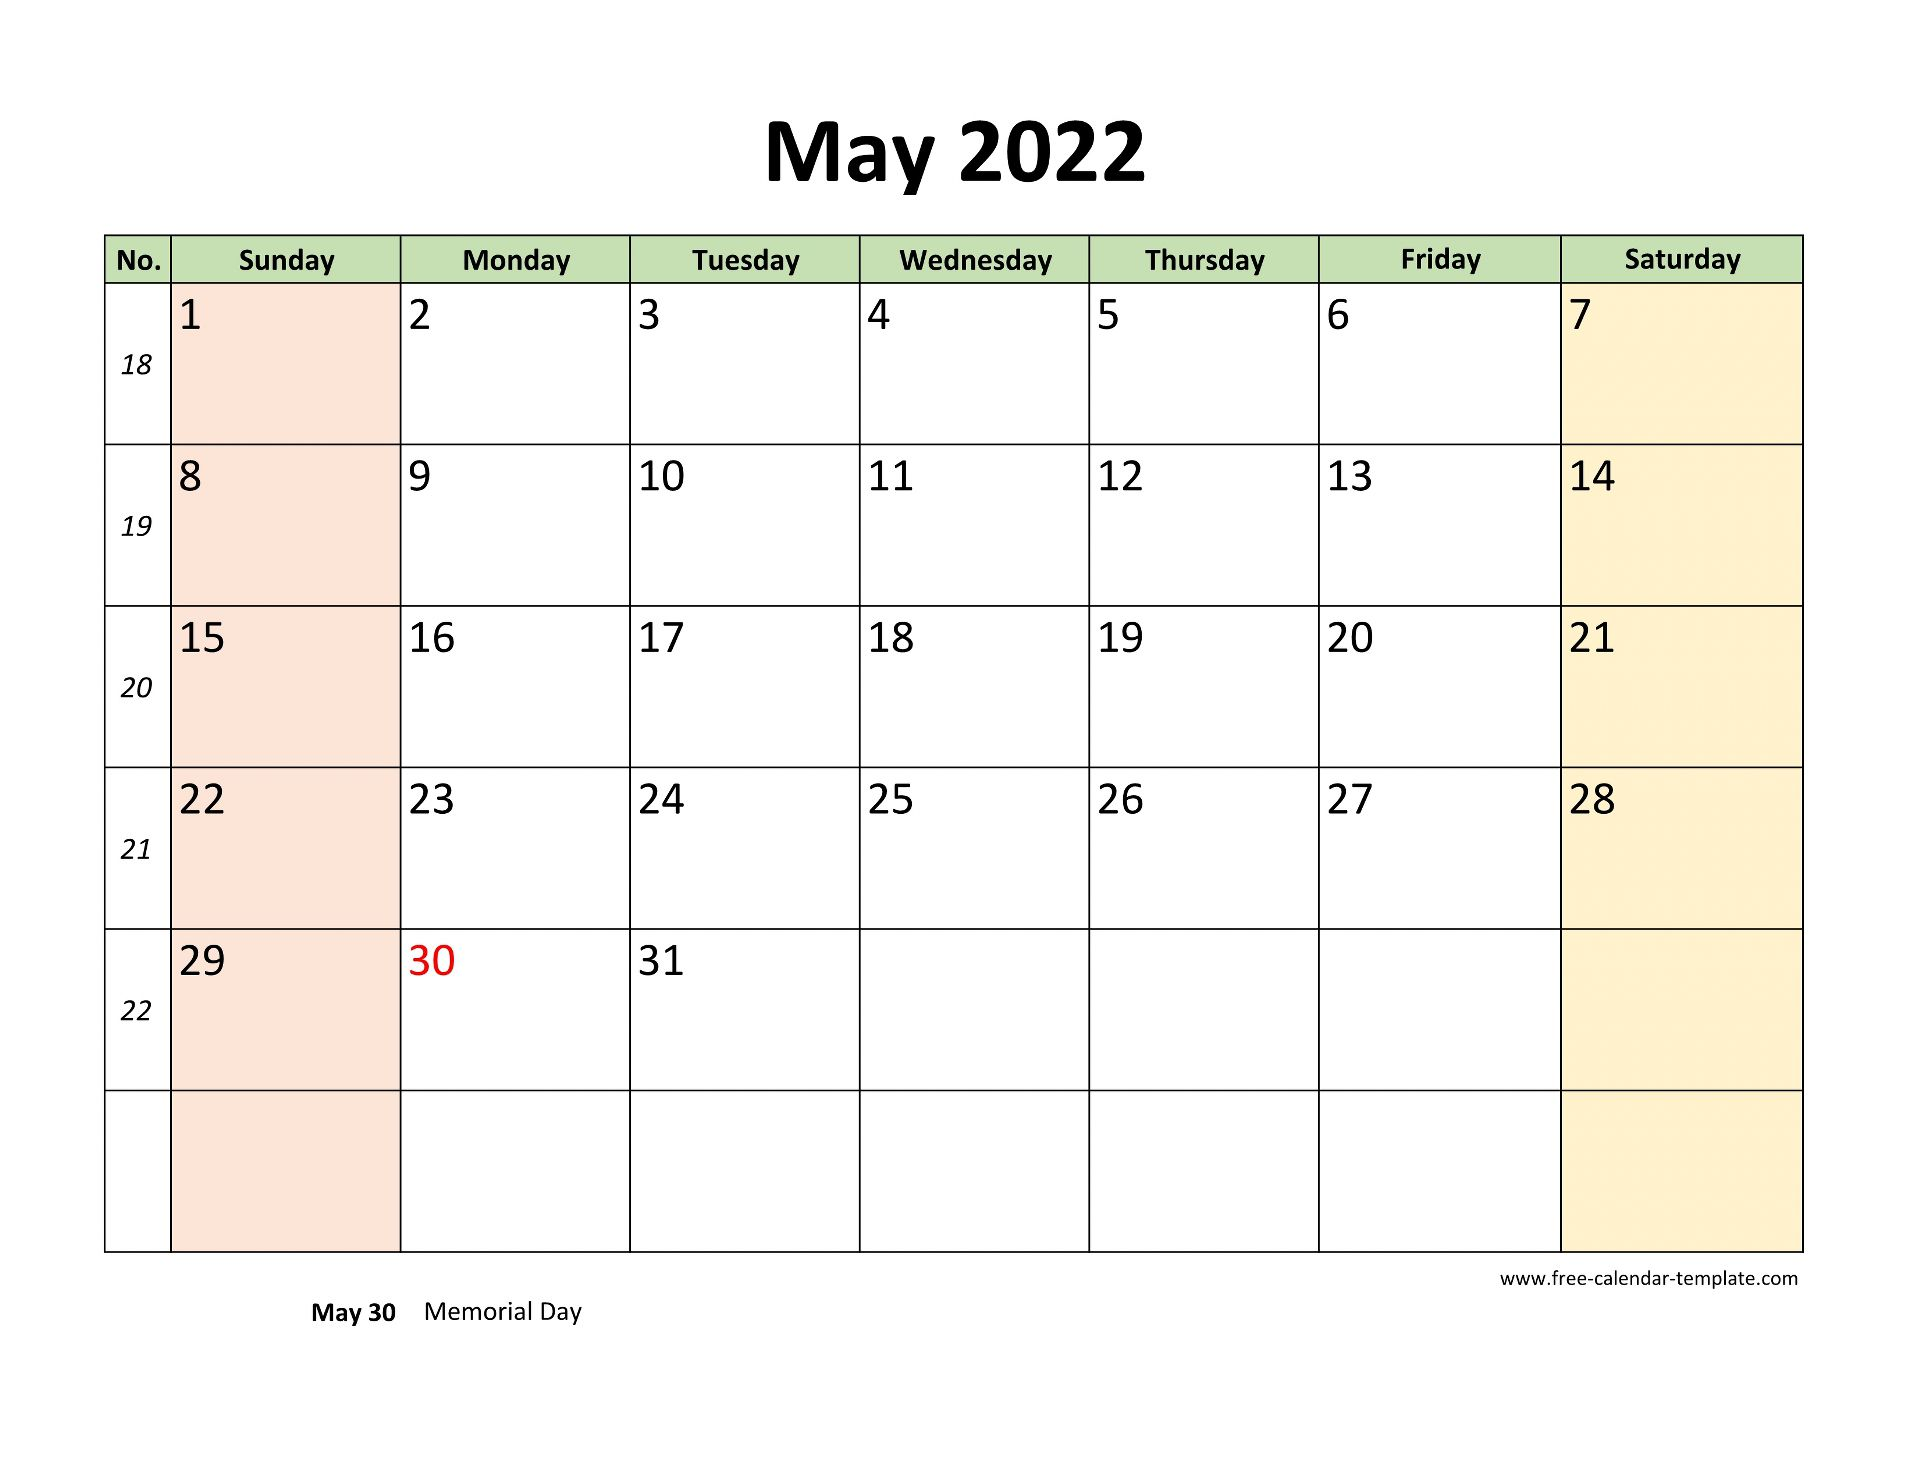 May 2022 Calendar Printable With Coloring On Weekend Horizontal Free Calendar Template Com